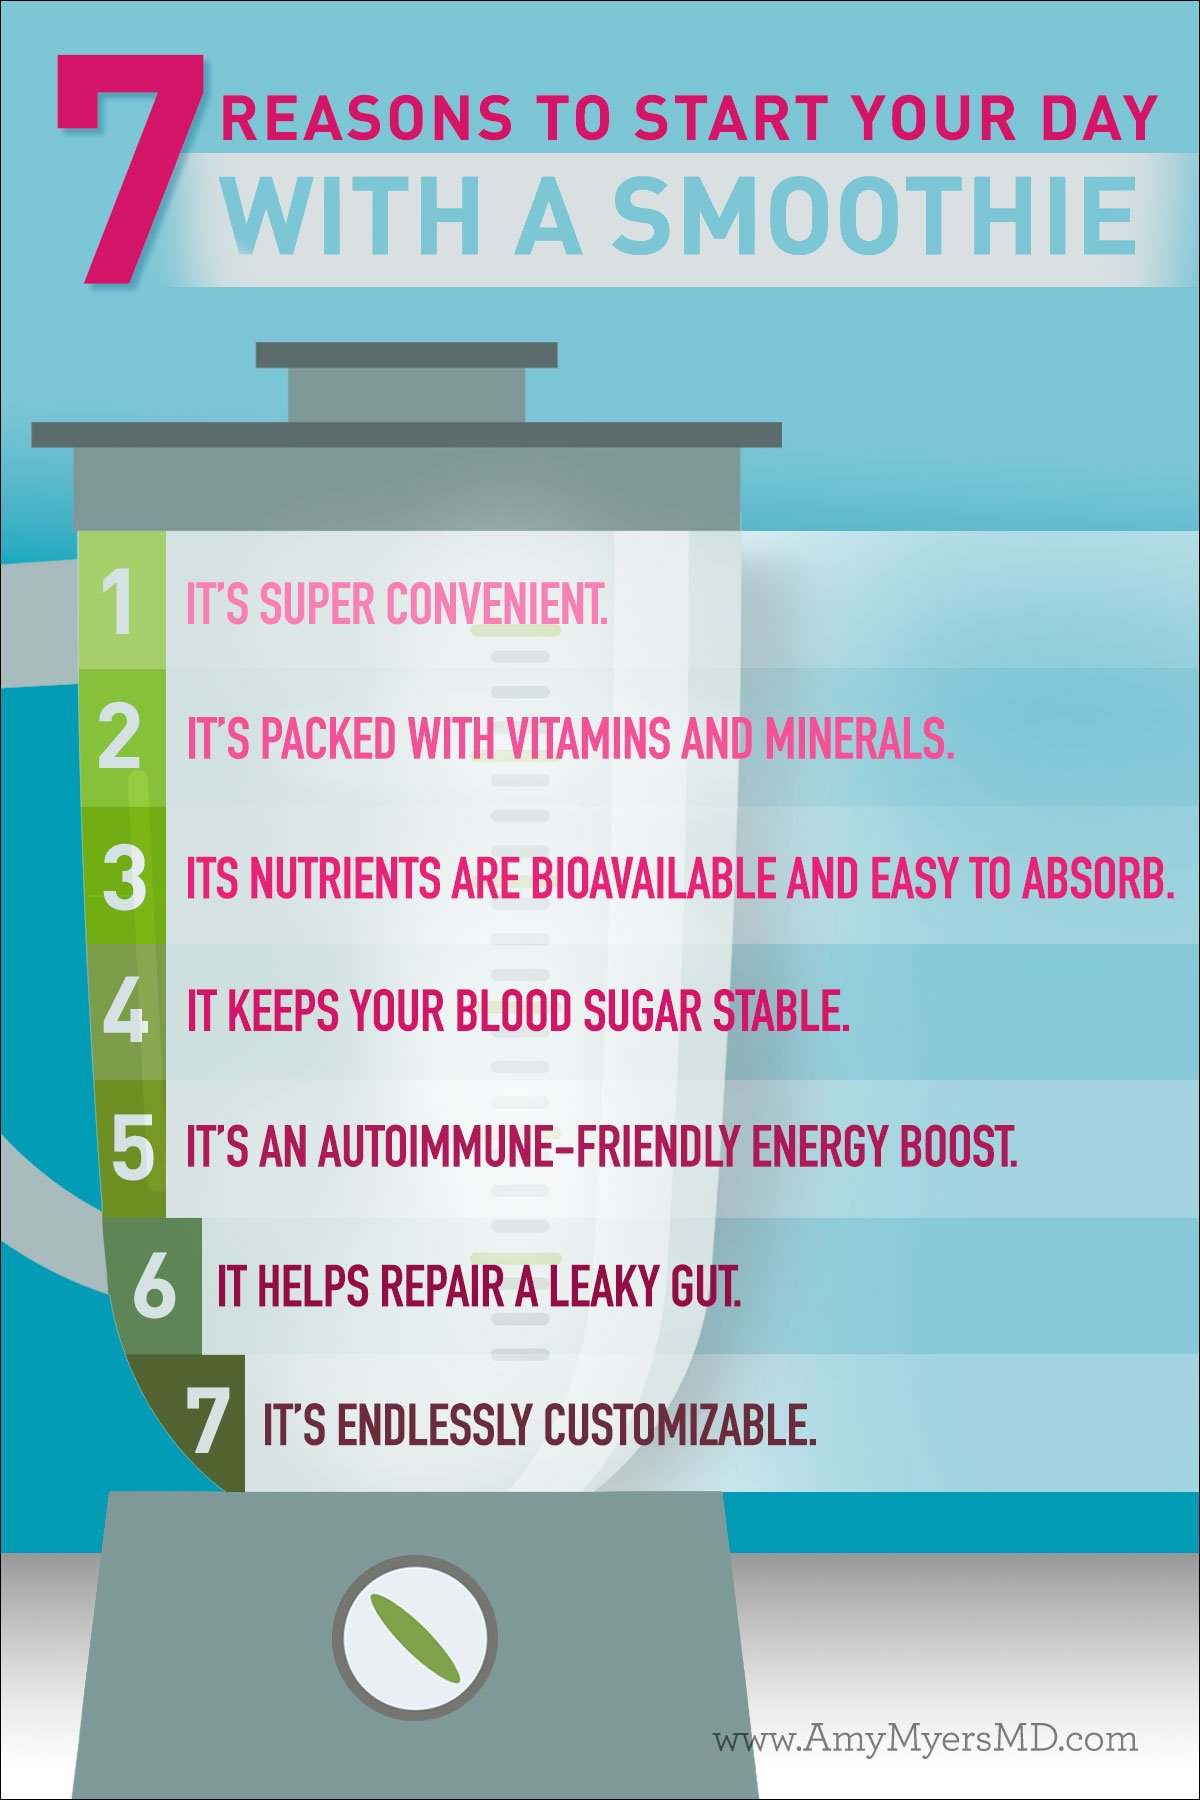 7 Reasons to Start Your Day with a Smoothie - Infographic - Amy Myers MD